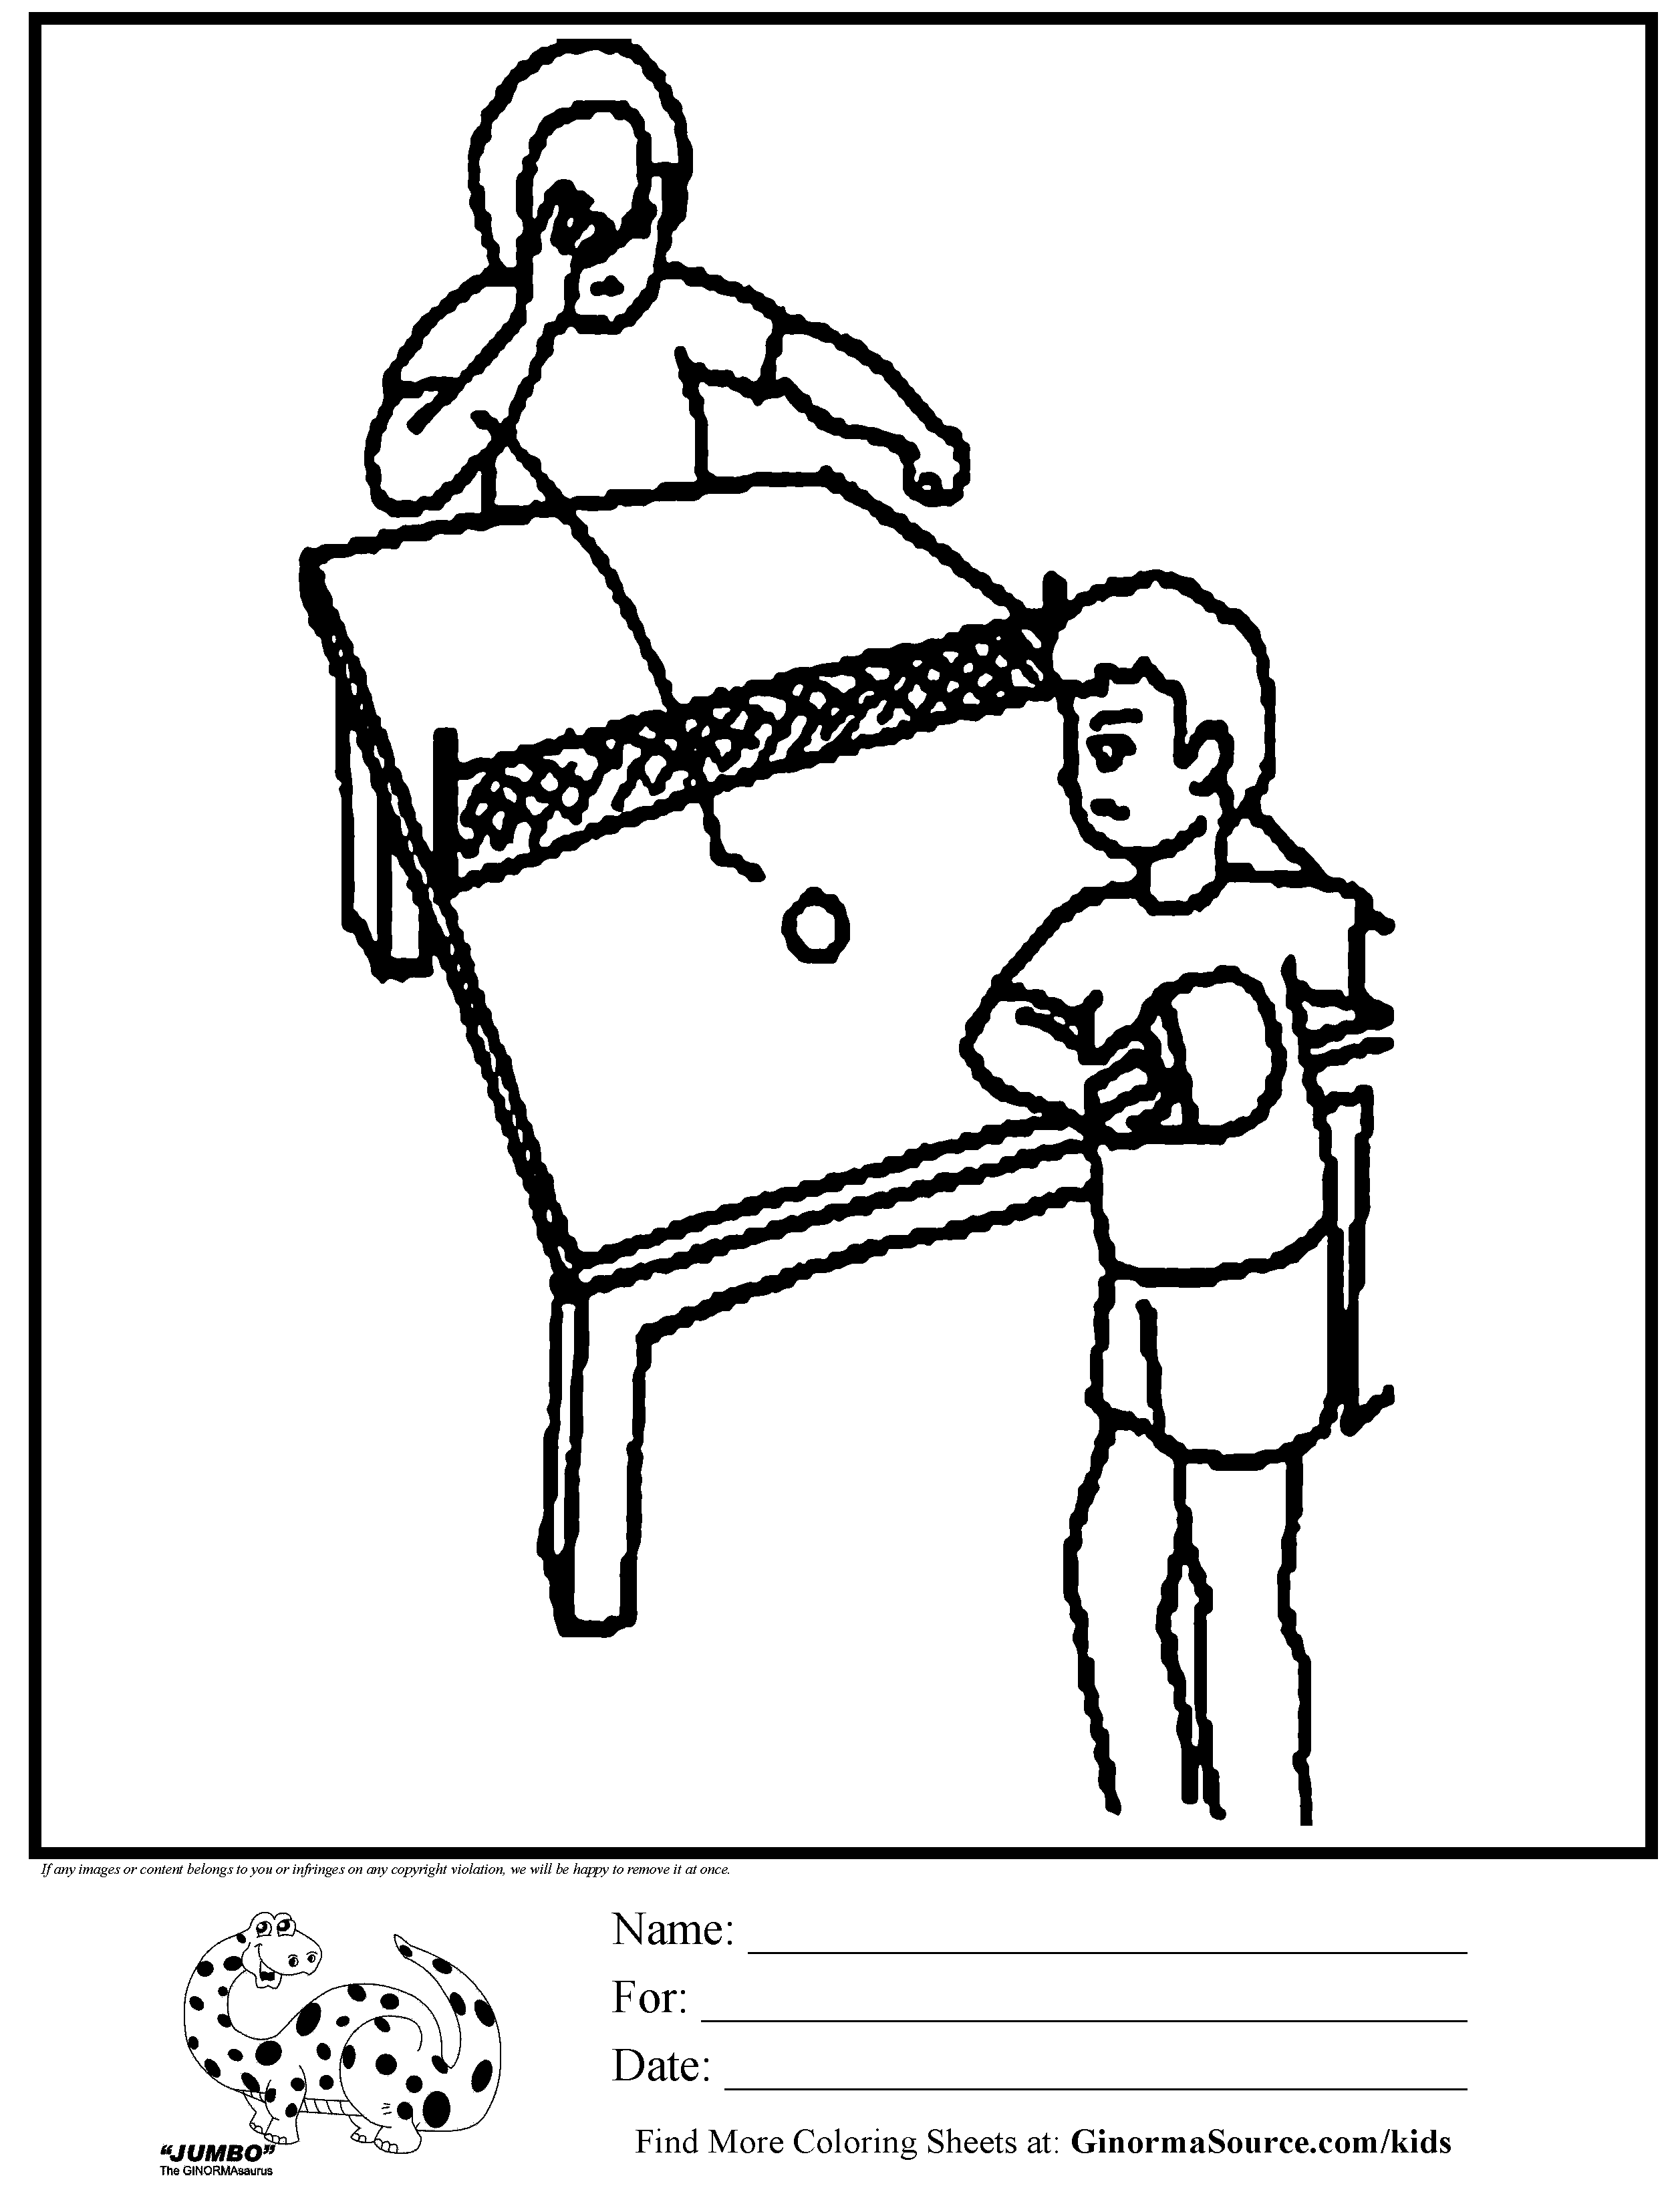 12 Table Tennis Coloring Page To Print